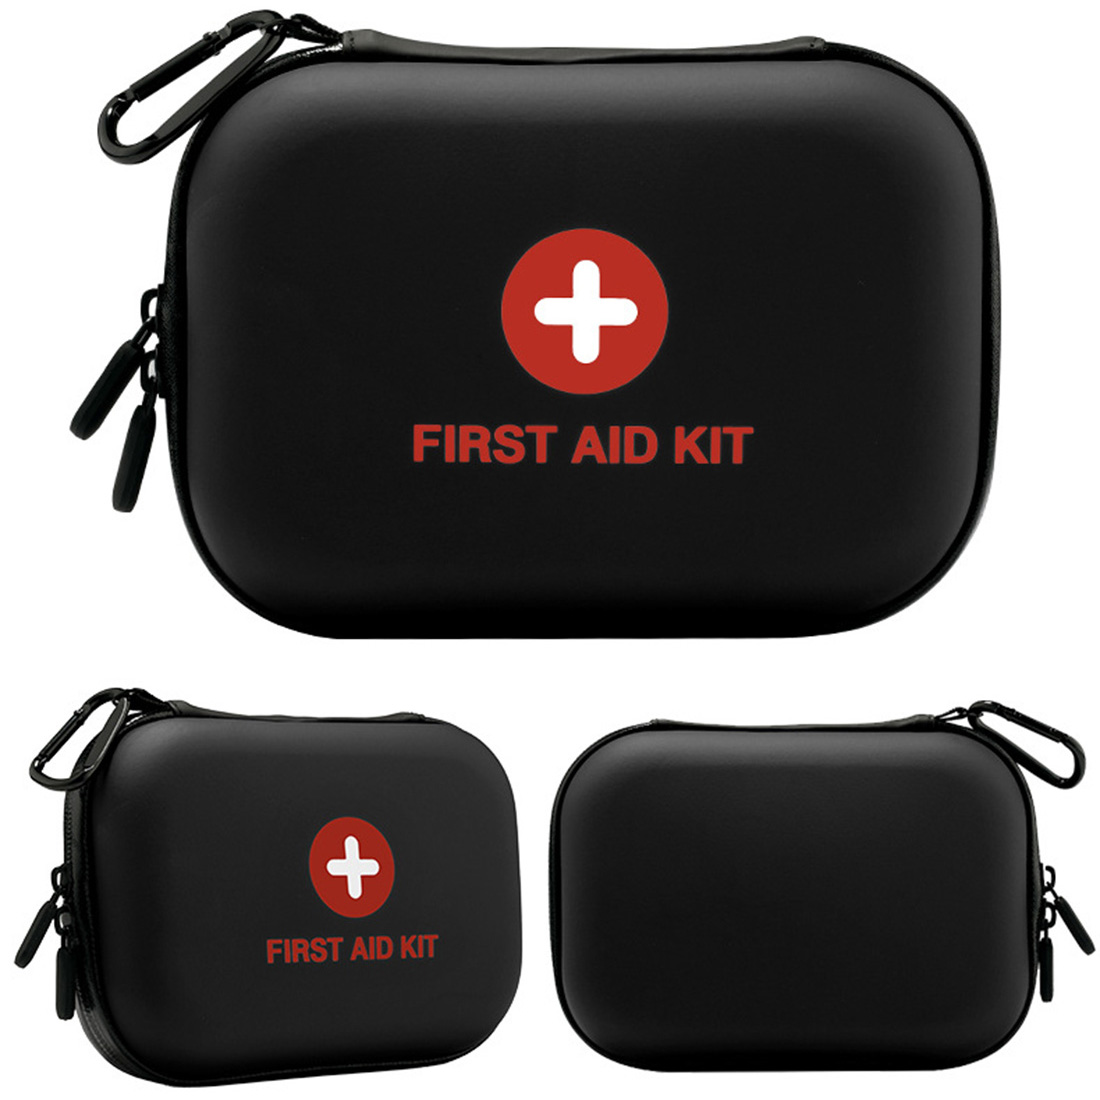 101Pcs 26 27 Item First Aid Bag Set Buckle Portable Outdoor Medical Emergency Kit Pouch Survival Treatment Pack Sport Travel Car